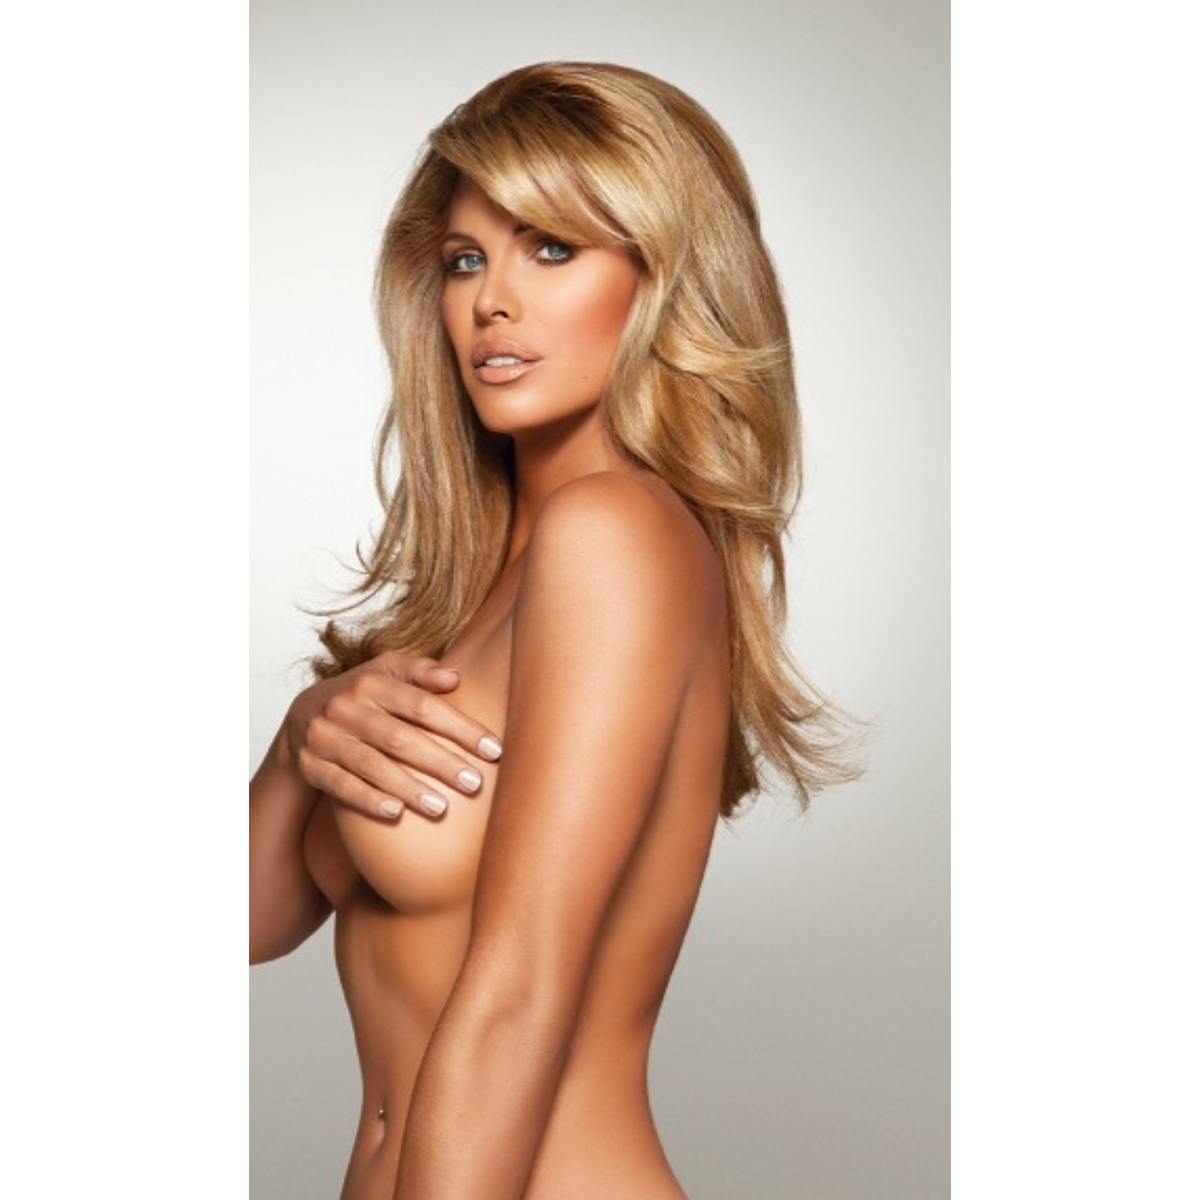 Candis cayne before sex change